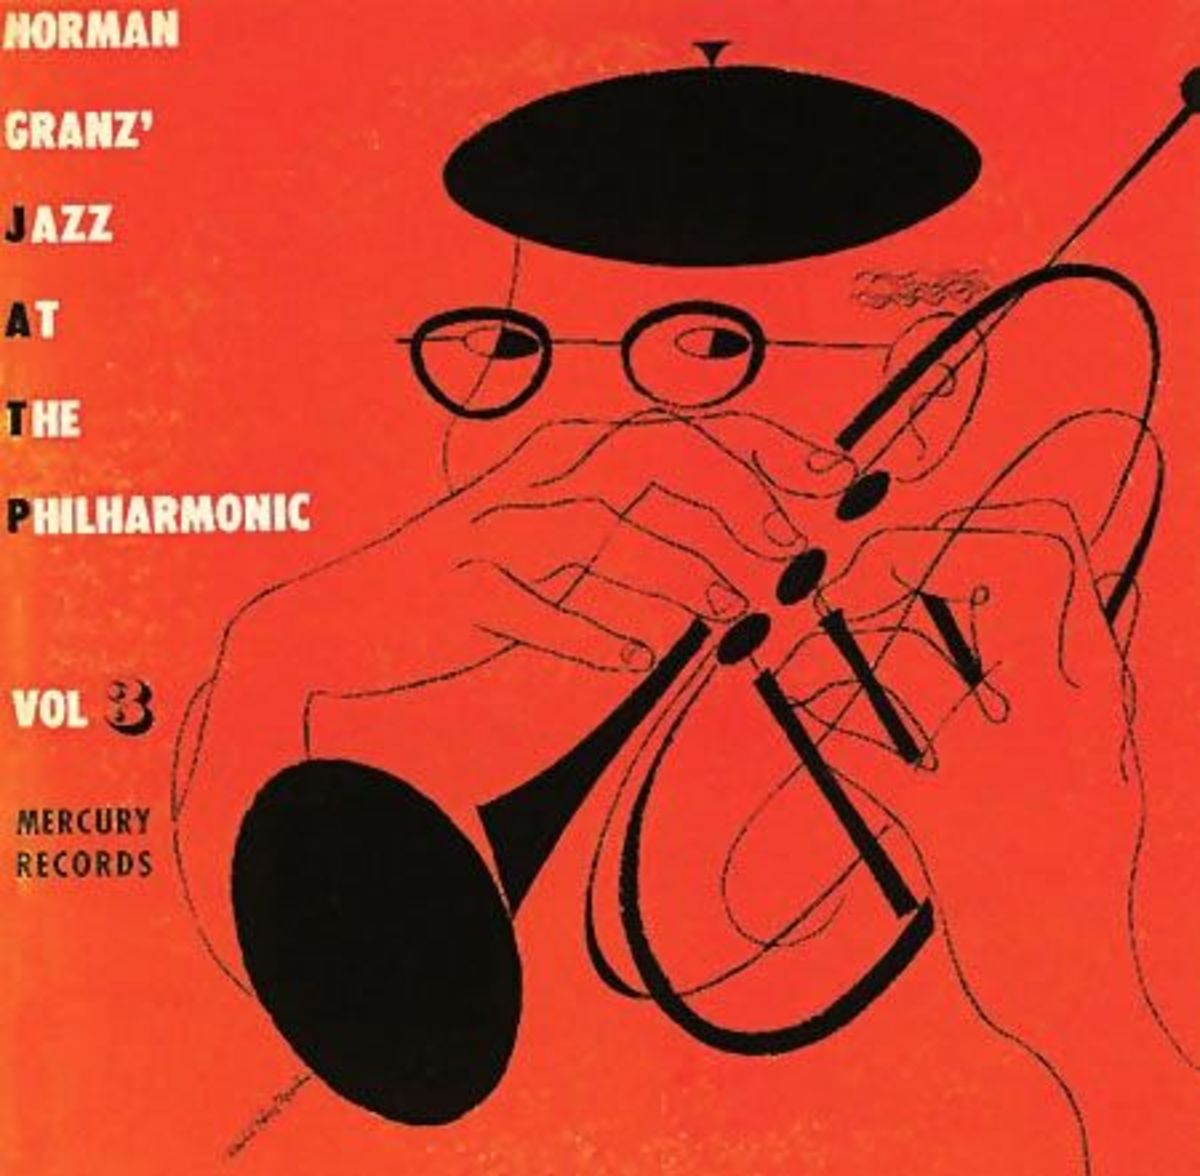 "Jazz at the Philharmonic, vol. 3 - Mercury / Clef JATP vol 3 10"" LP Vinyl Record (1951) Album Cover Art by David Stone Martin"